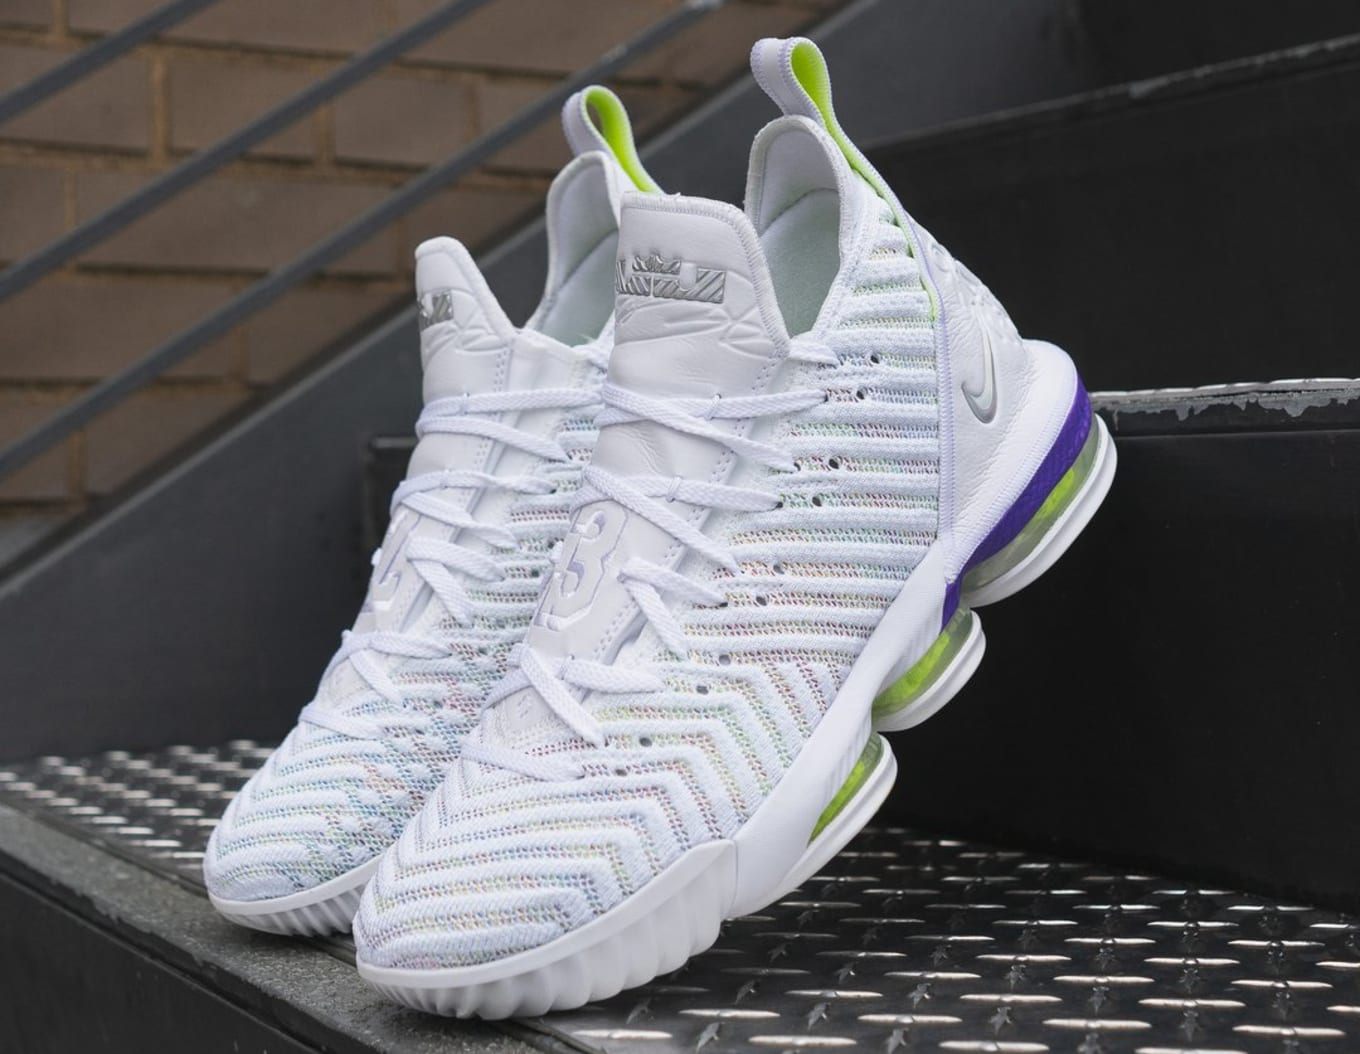 8b69da4da049de Nike LeBron 16 White Multicolor-Hyper Grape-Volt AO2588-102 Release ...